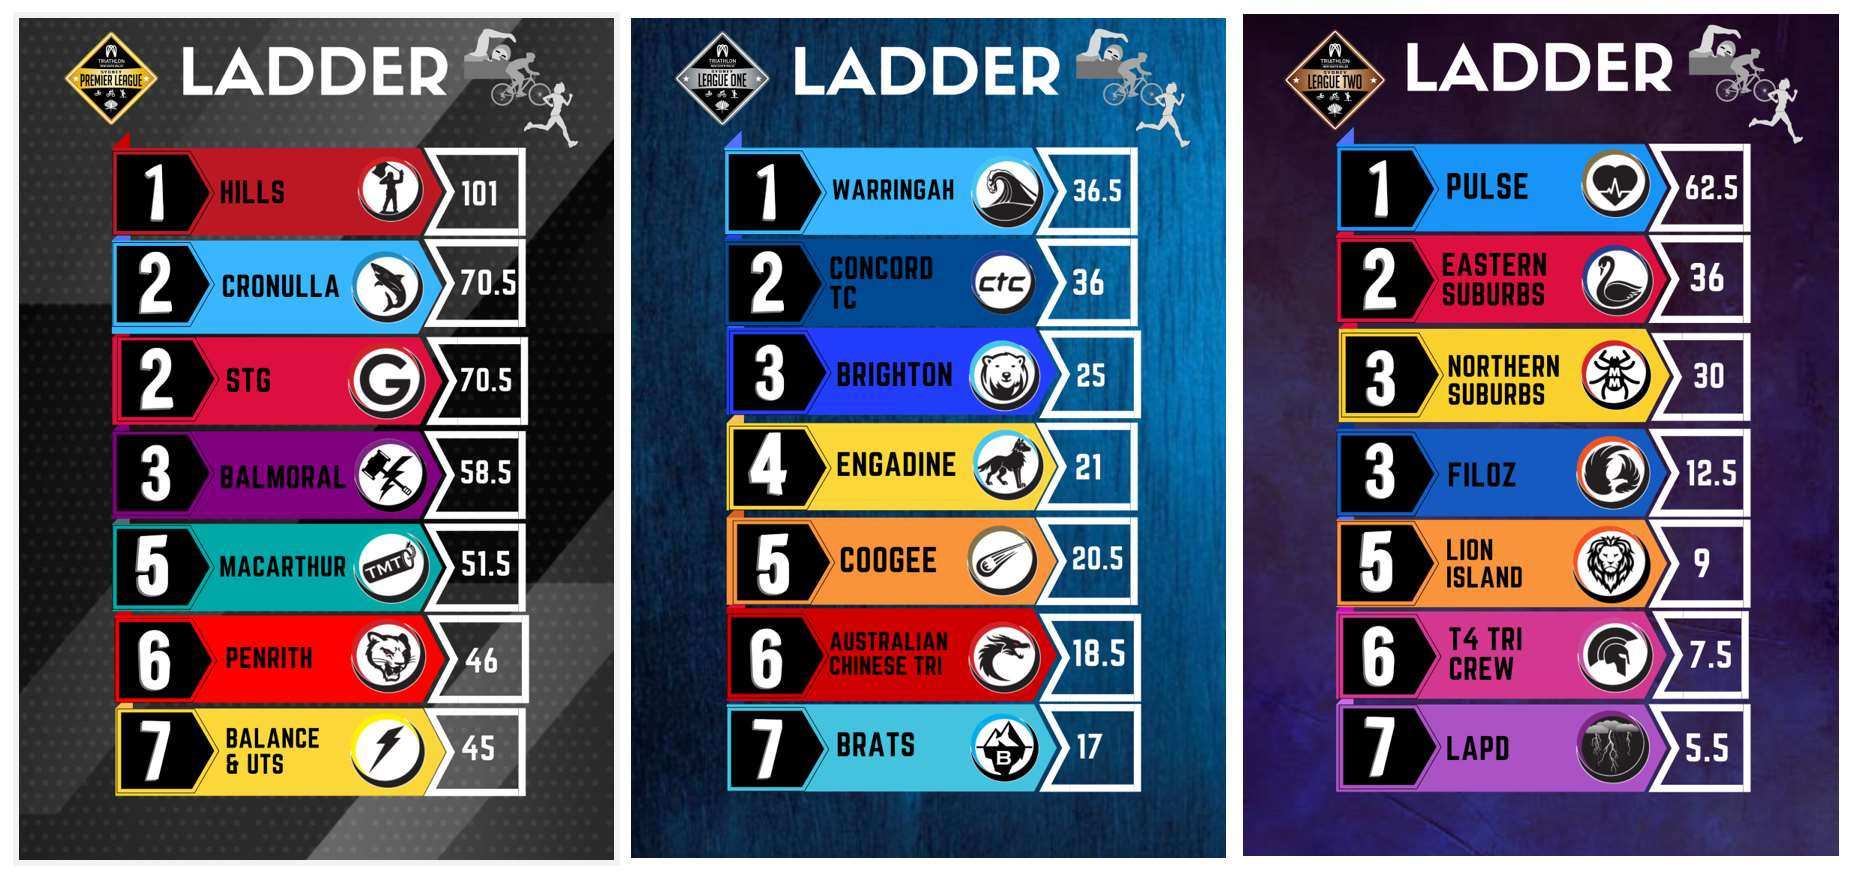 Updated Sydney League Ladders